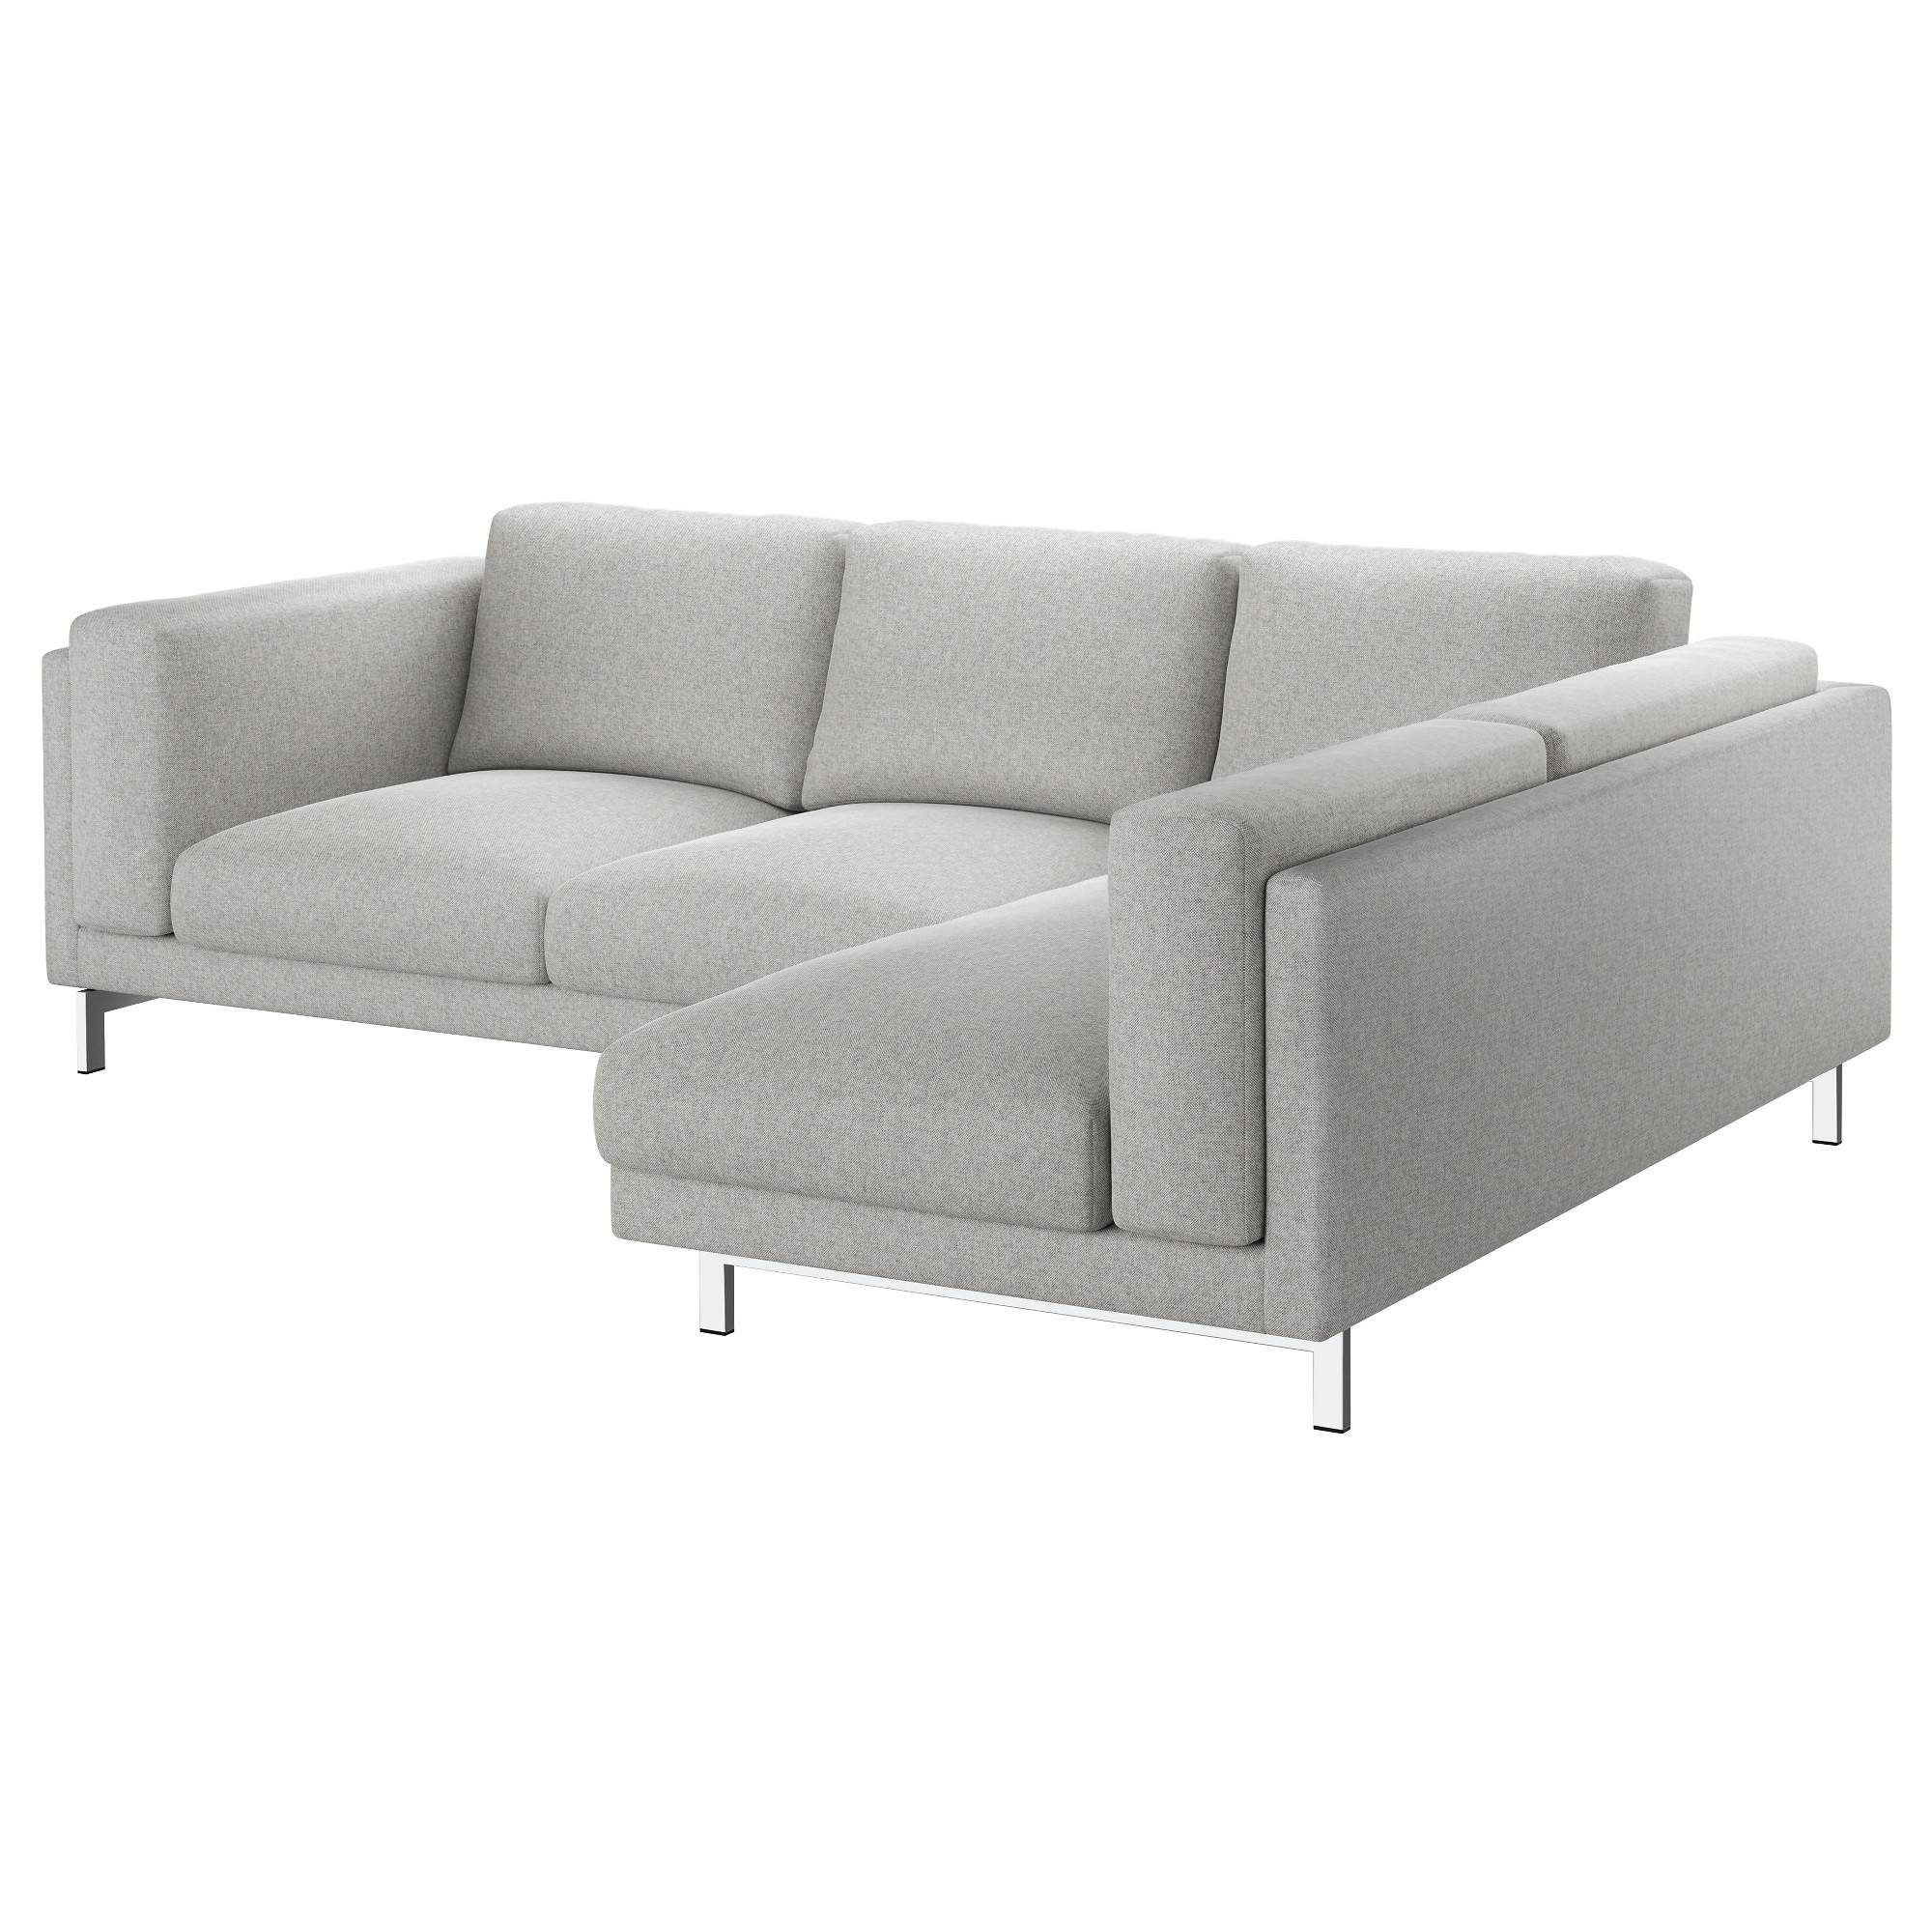 Nockeby Two-Seat Sofa W Chaise Longue Right Tallmyra White/black intended for Ikea Two Seater Sofas (Image 19 of 30)